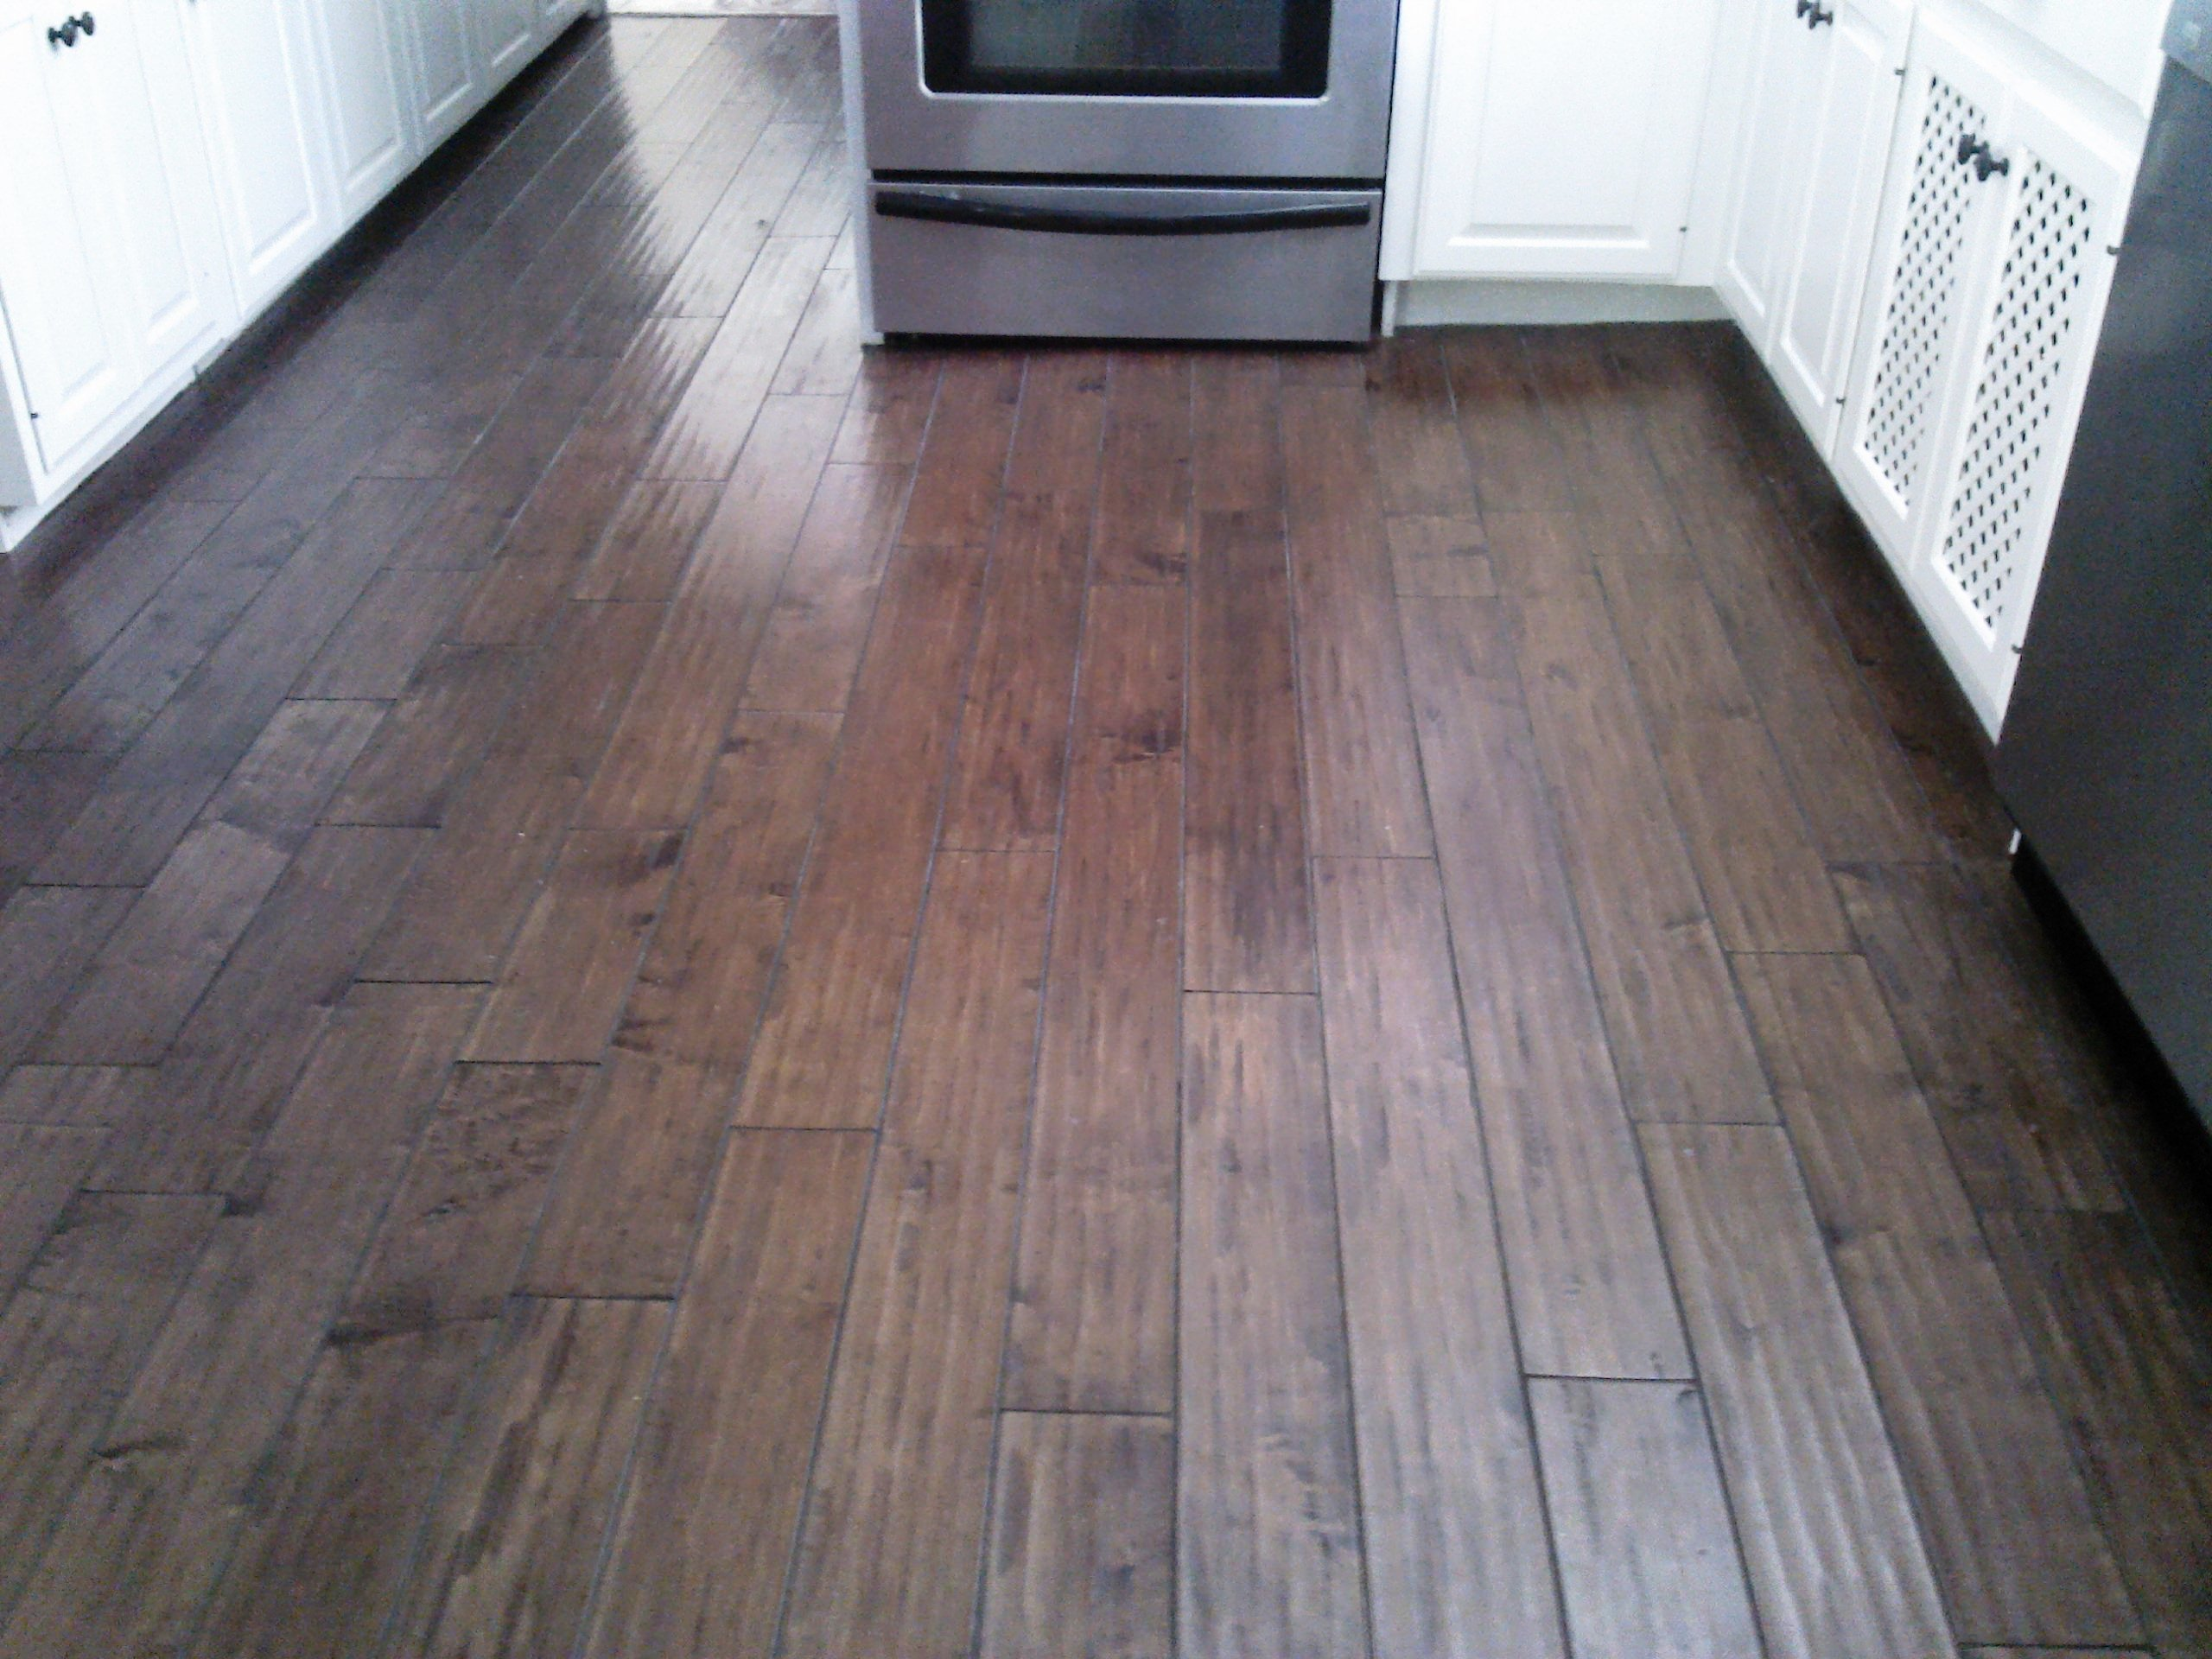 Laminate Wood Flooring in Kitchen Ratings Reviews laminate kitchen flooring